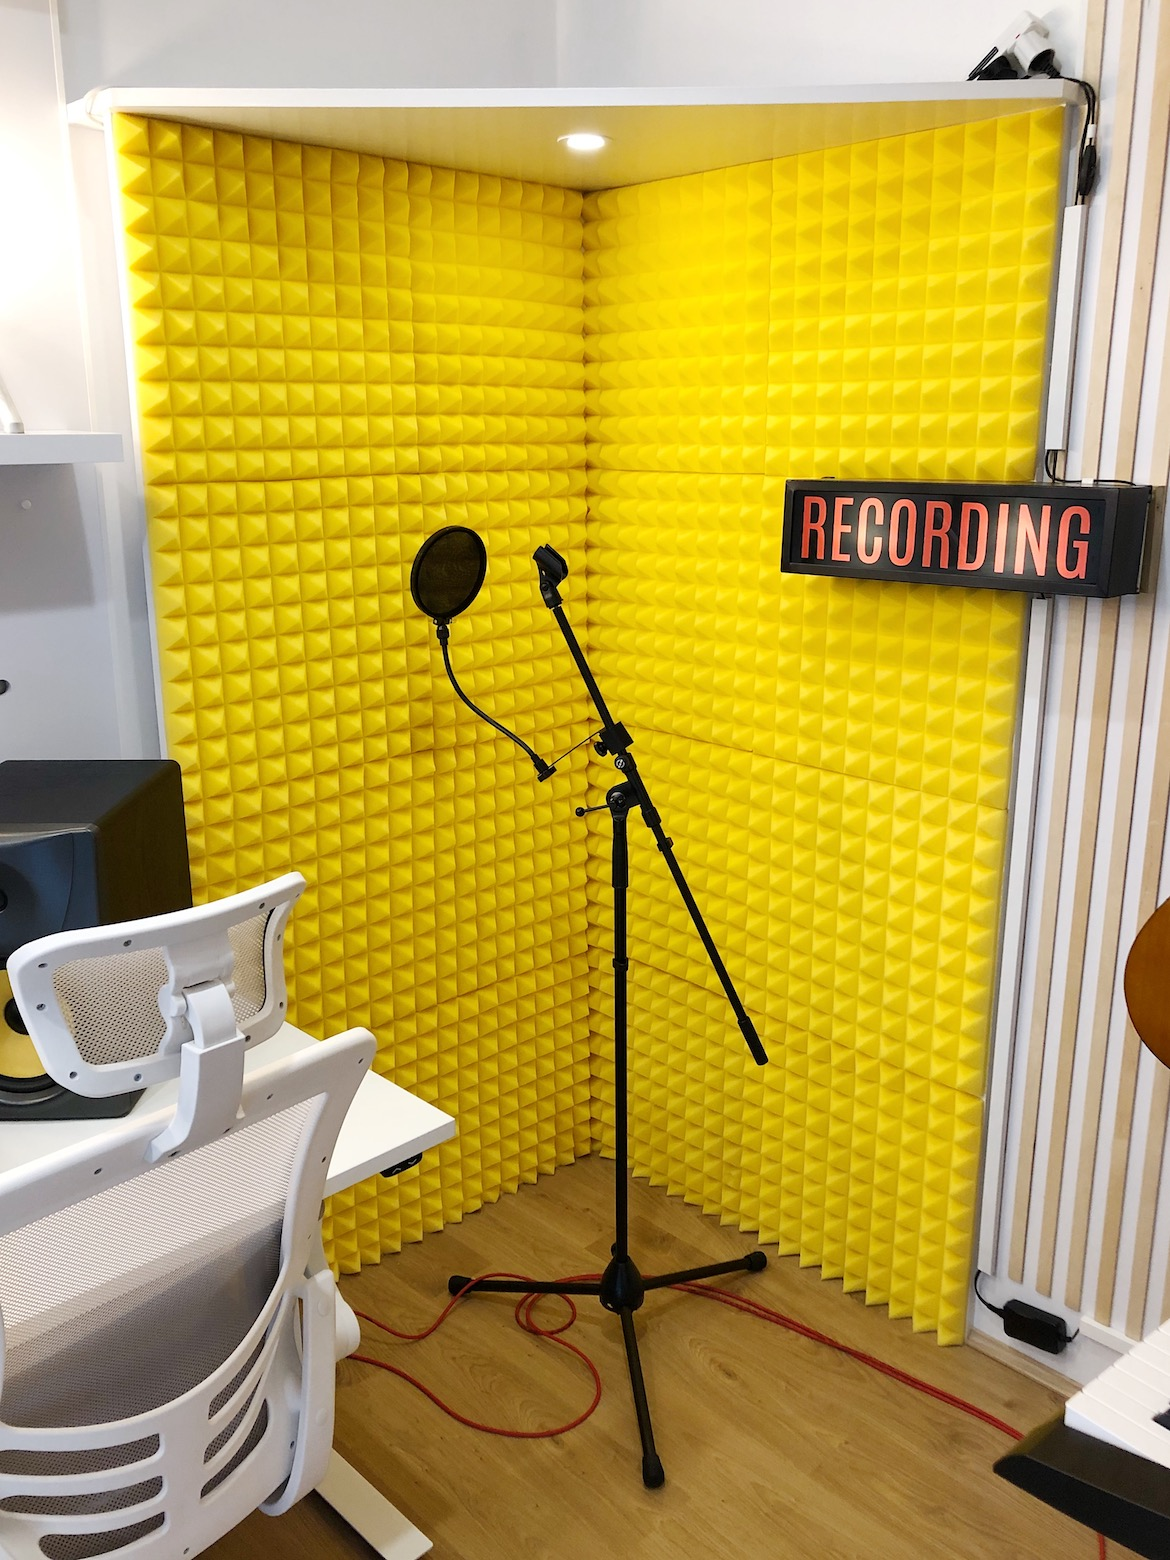 Tigerplay_Childrens Trust MR_recording area.JPG